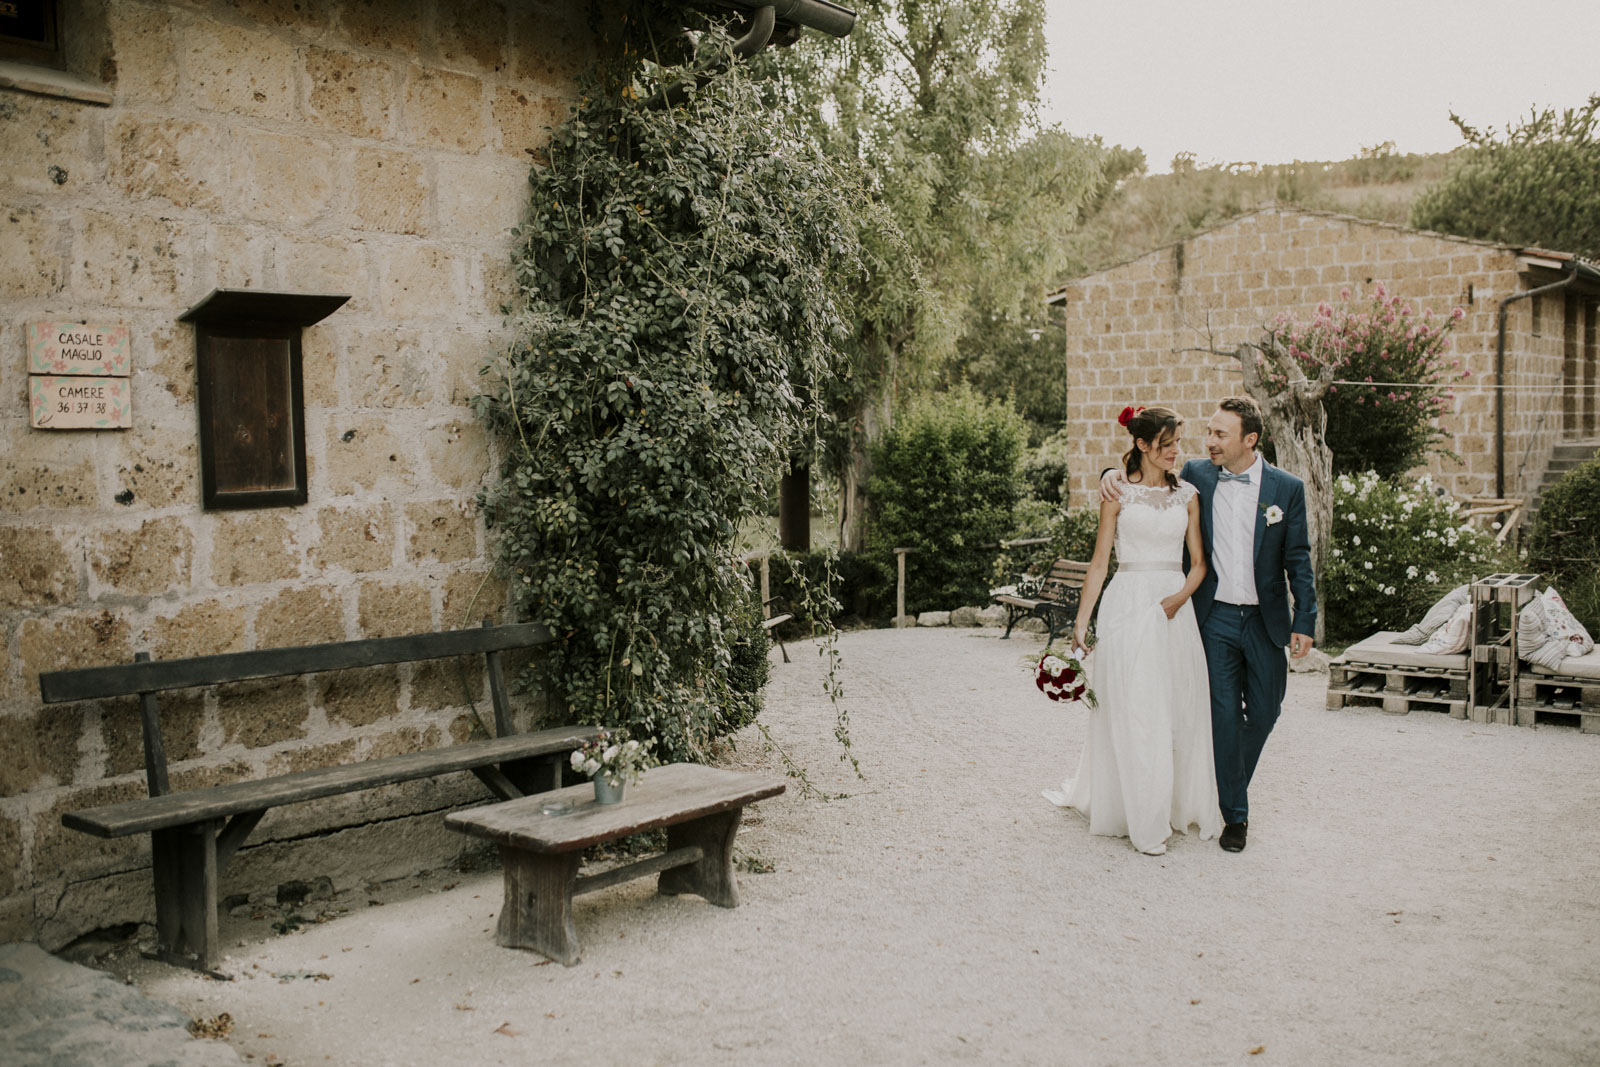 Countryside Wedding Outside Rome We Are The Wanderers